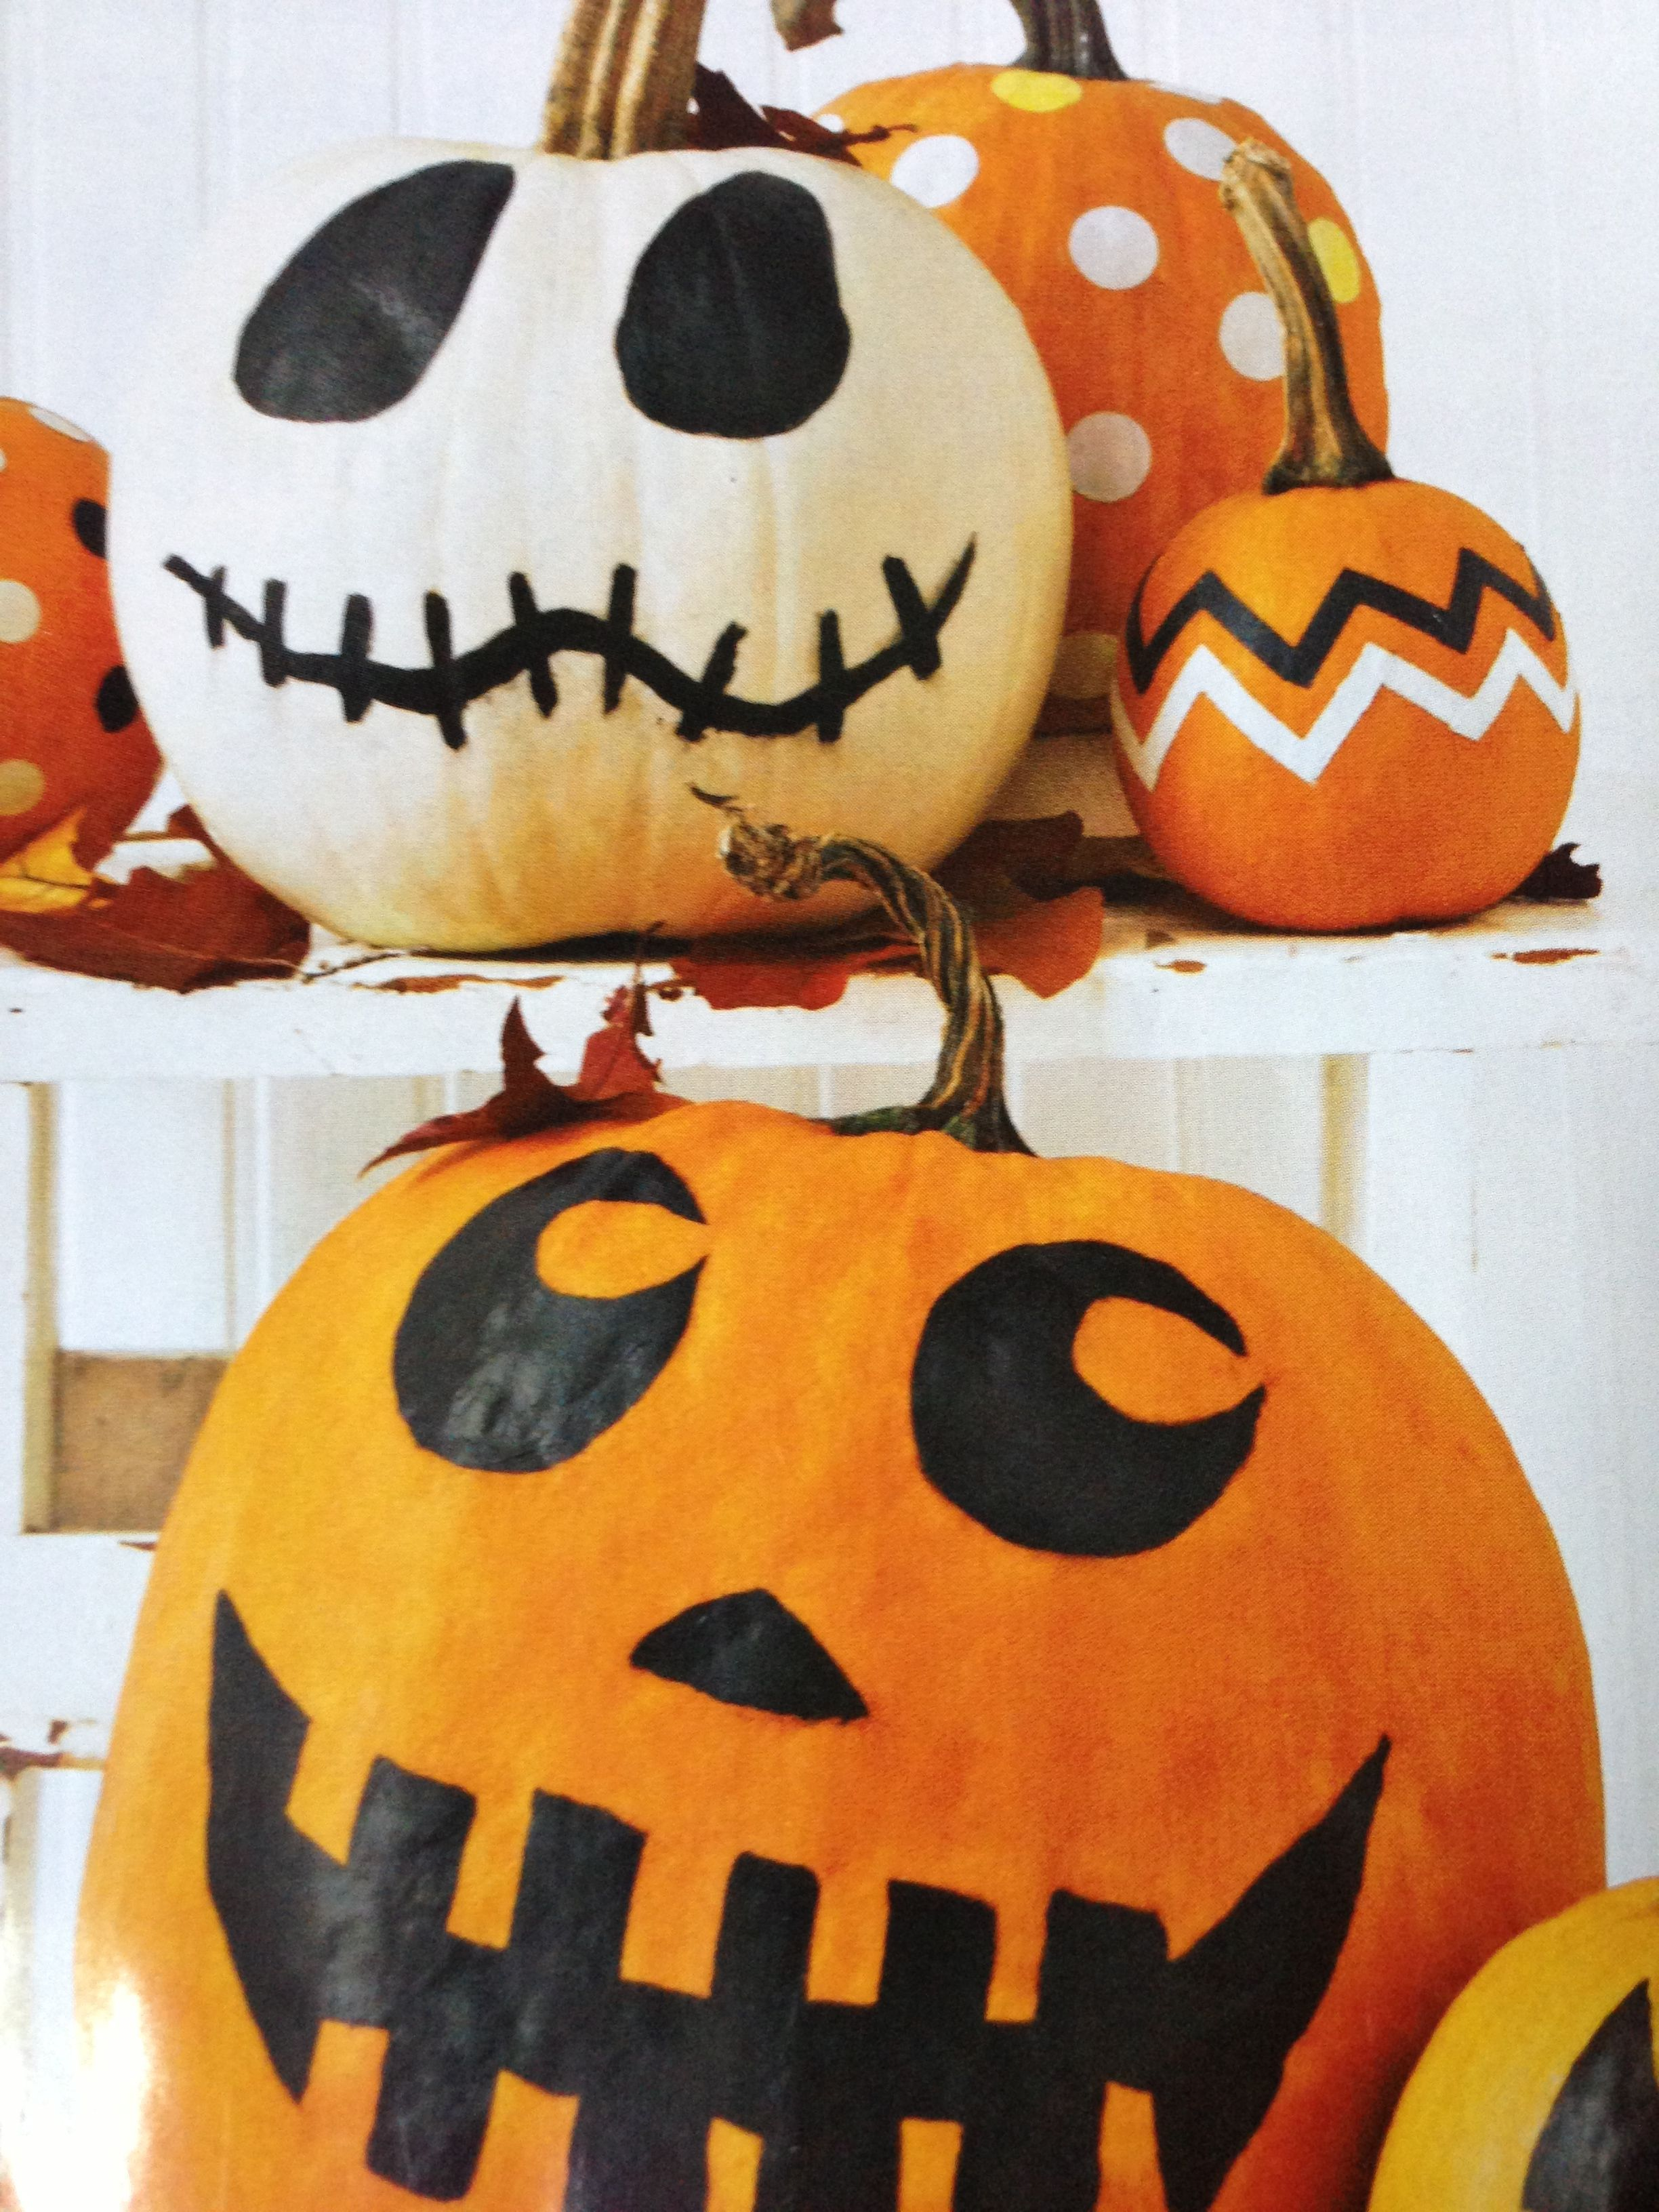 Painted Pumpkins Use Acrylic Paints Sharpies Or Spray Paint And On Gloss Sealer